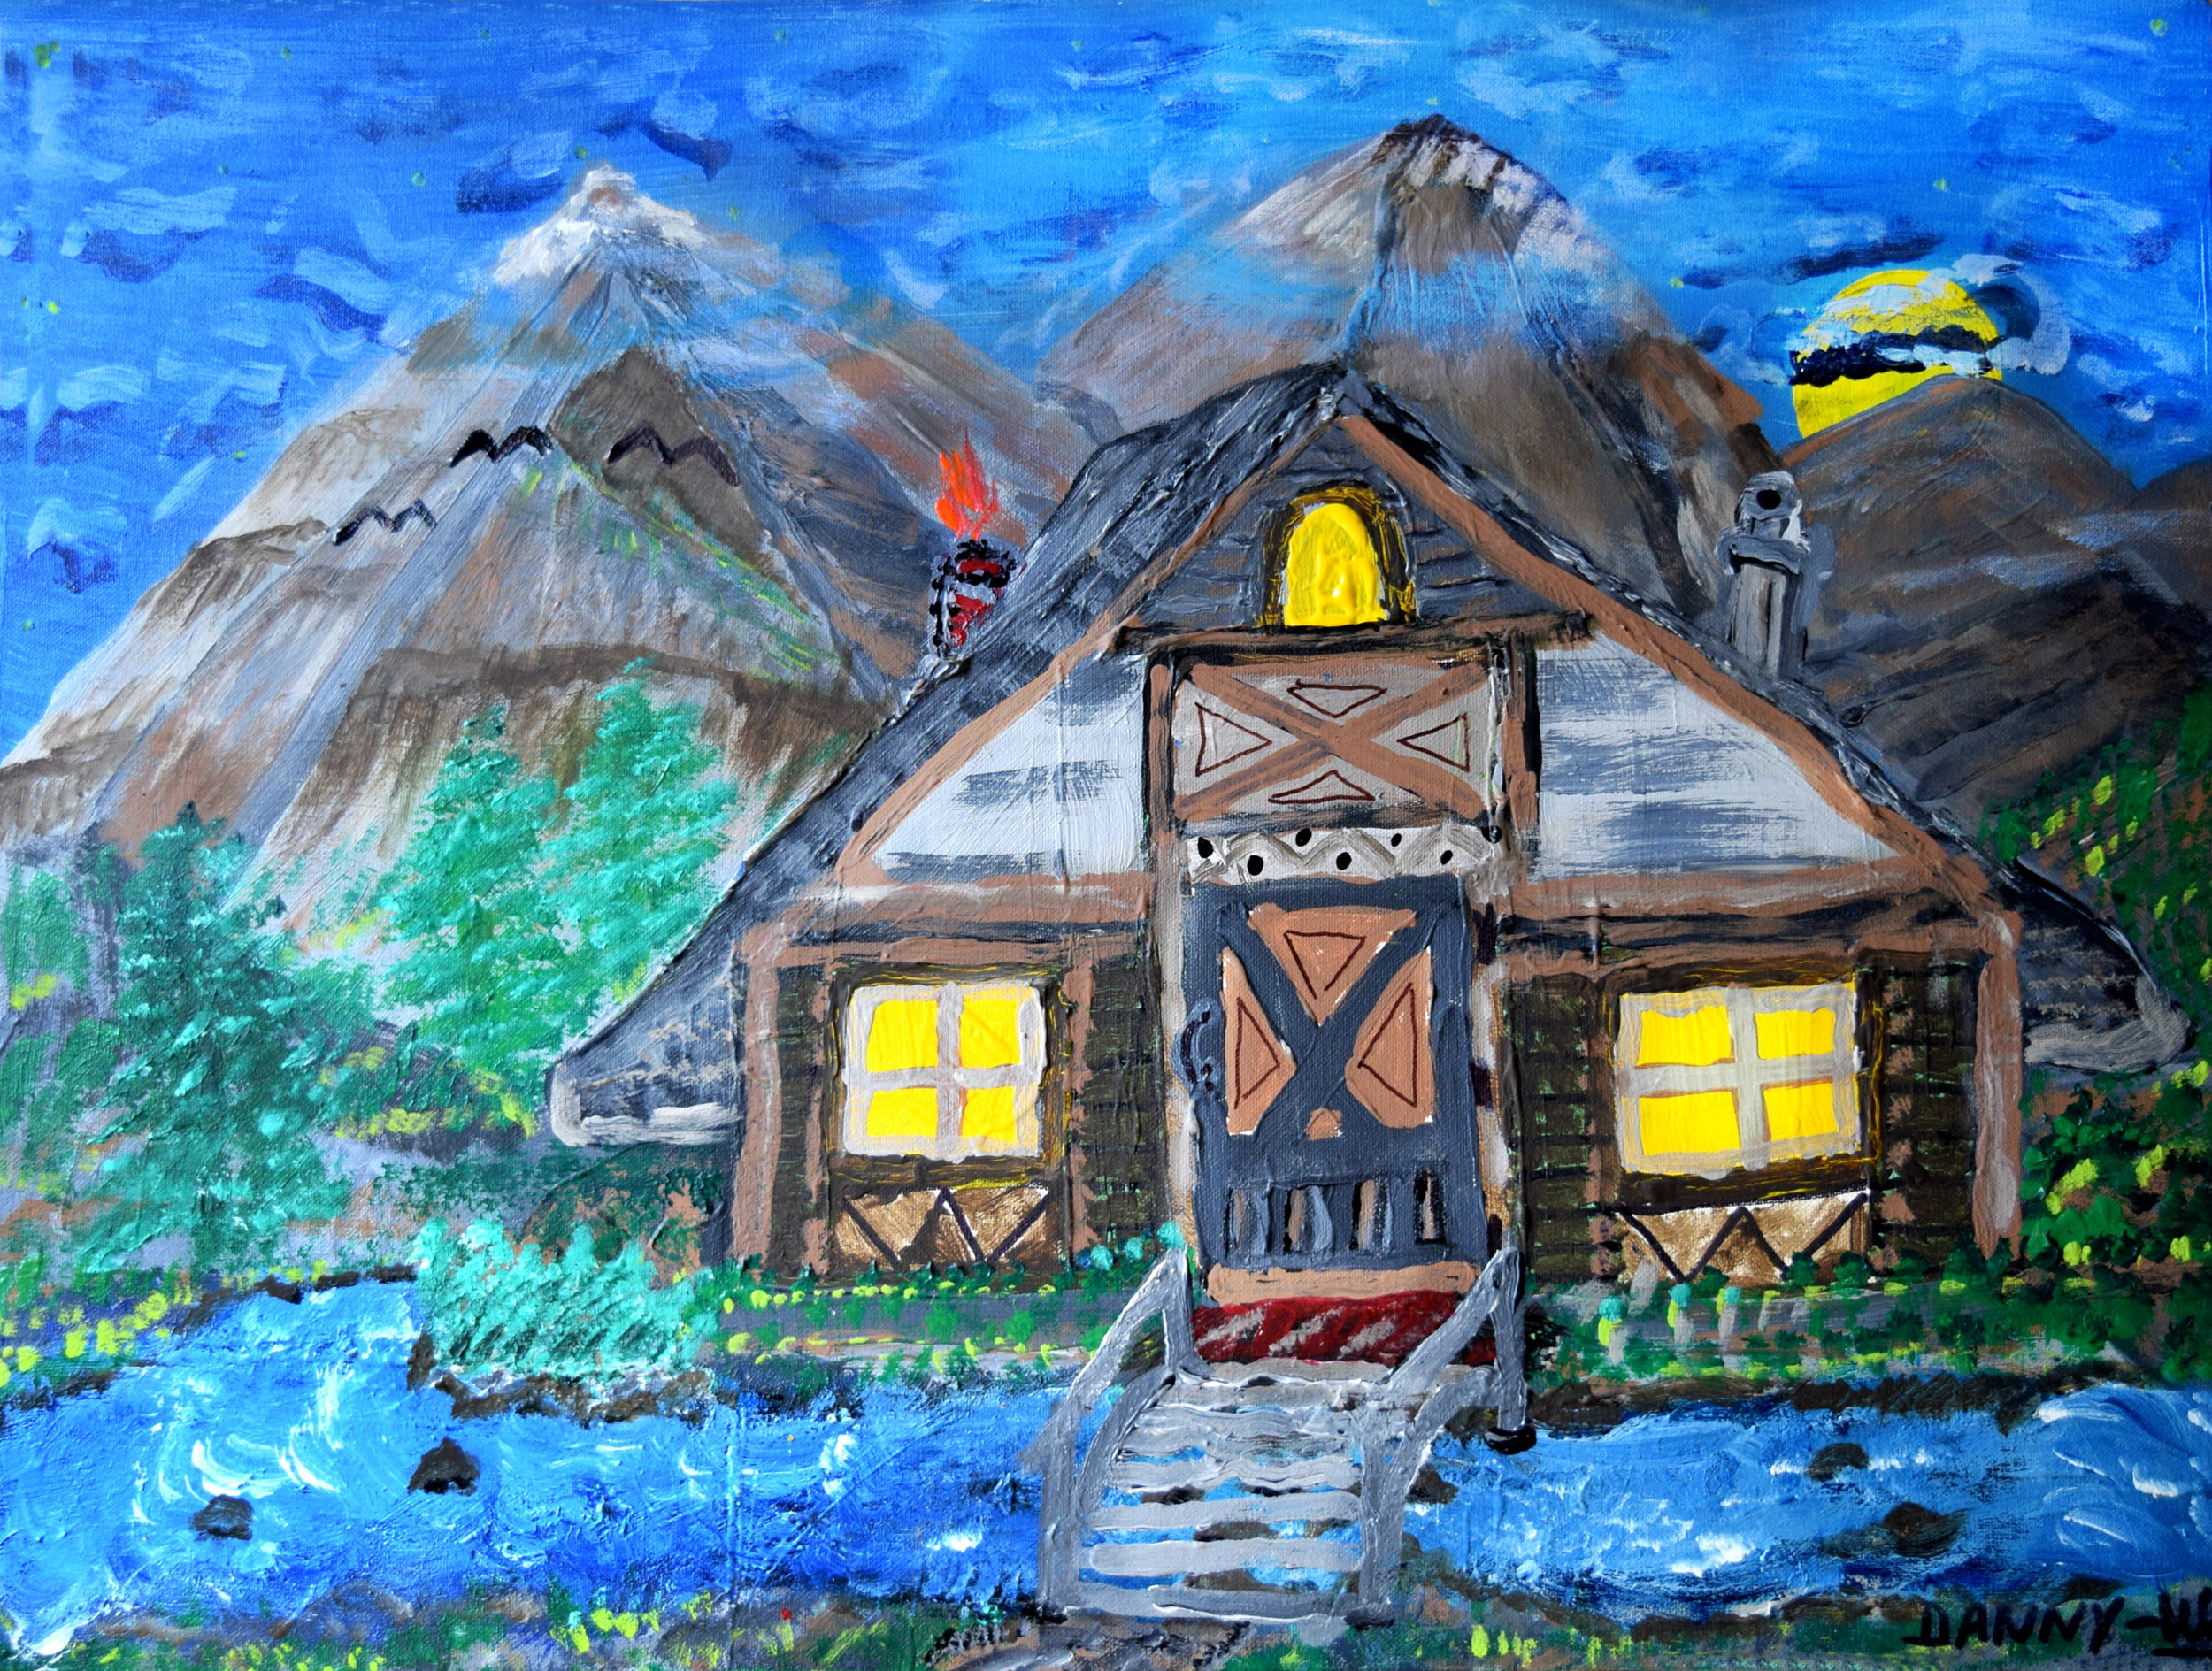 Mountain Stream Cabin  Wolf Danny Cook  Acrylic on canvas 11x17 photo print $35